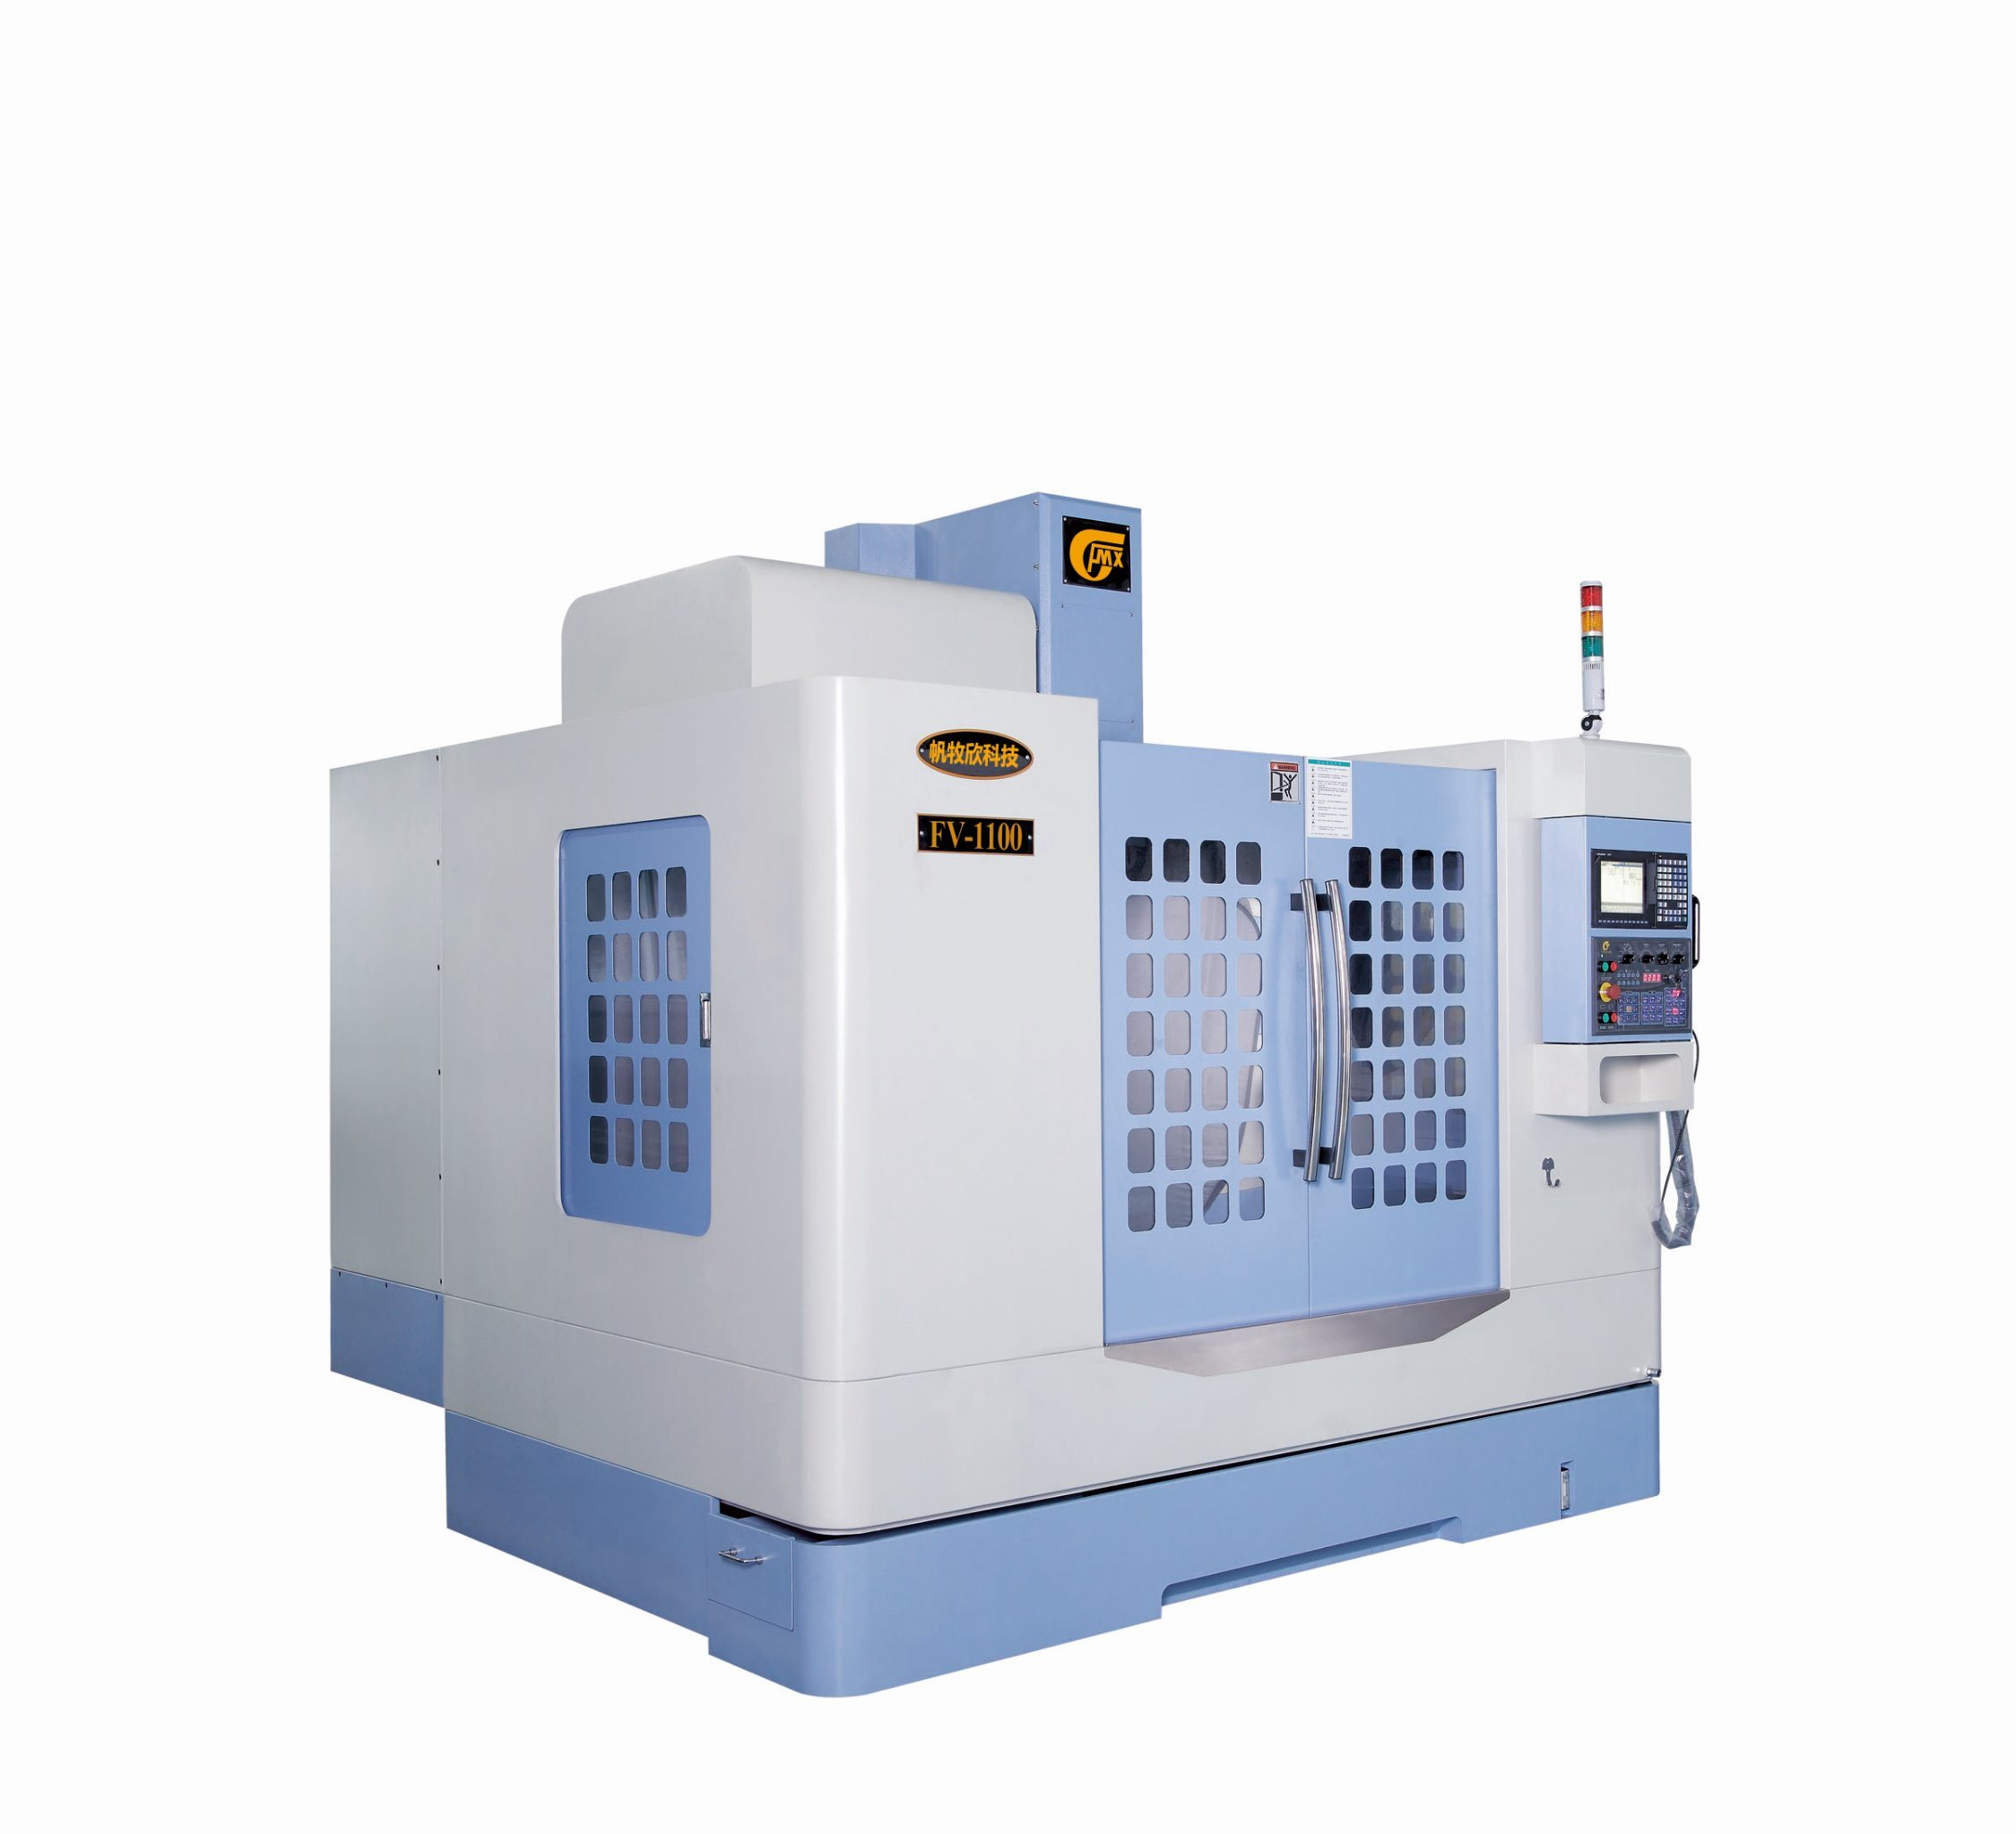 Popular in China CNC Vertical Milling Machine with Taiwan Technology (MV-1100)